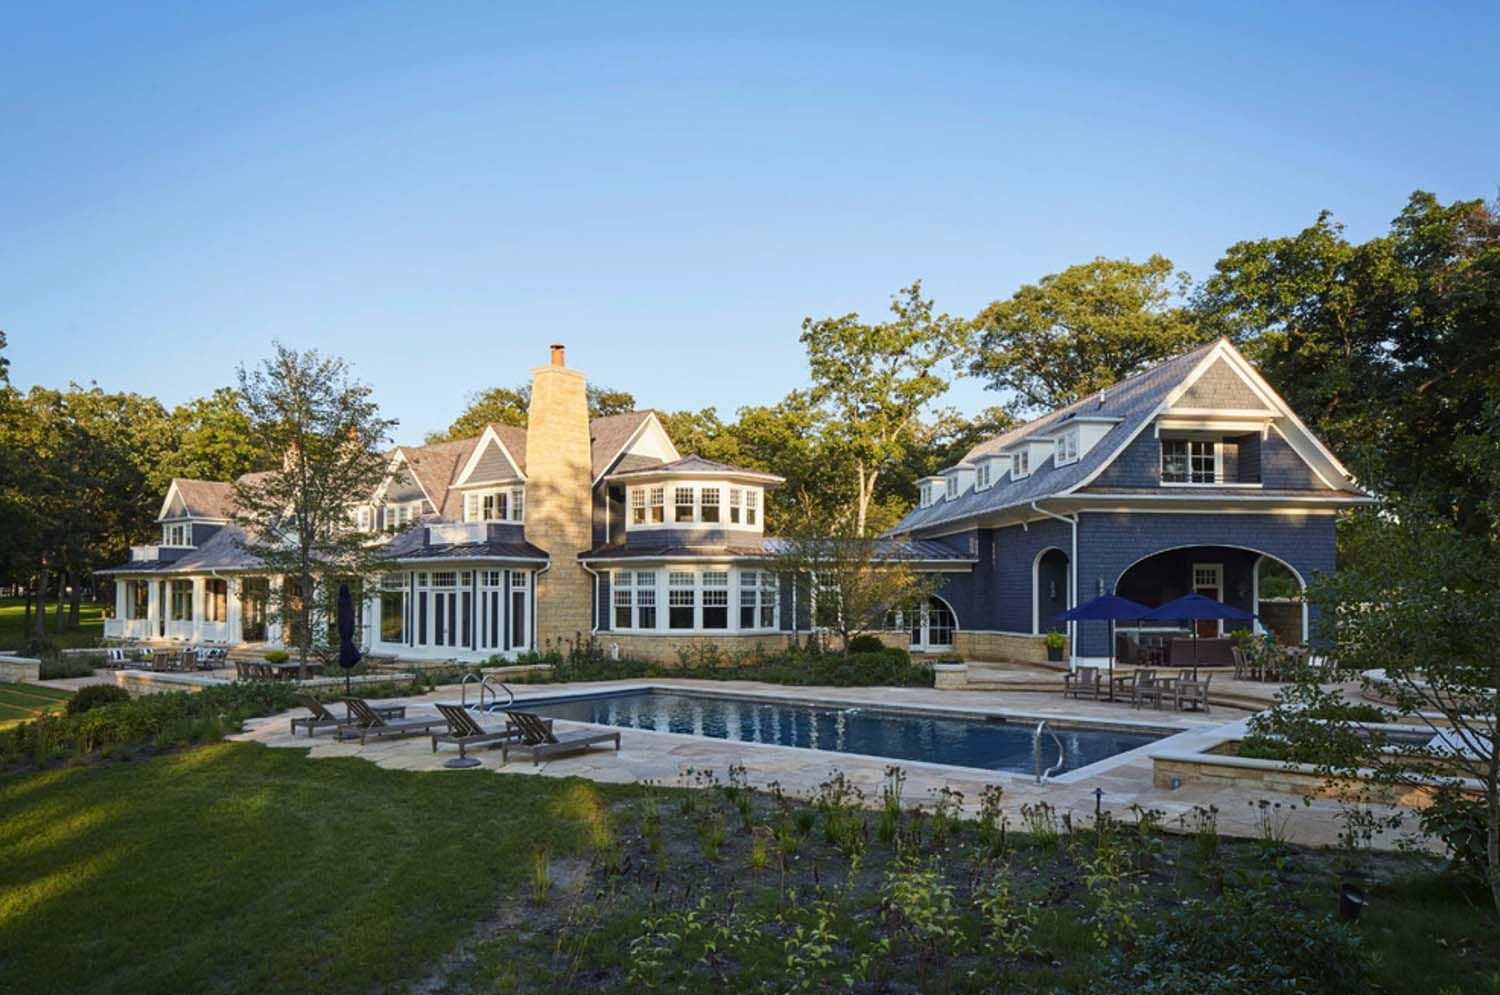 Shingle style home in illinois features interiors with understated elegance shingle style homes residential architect